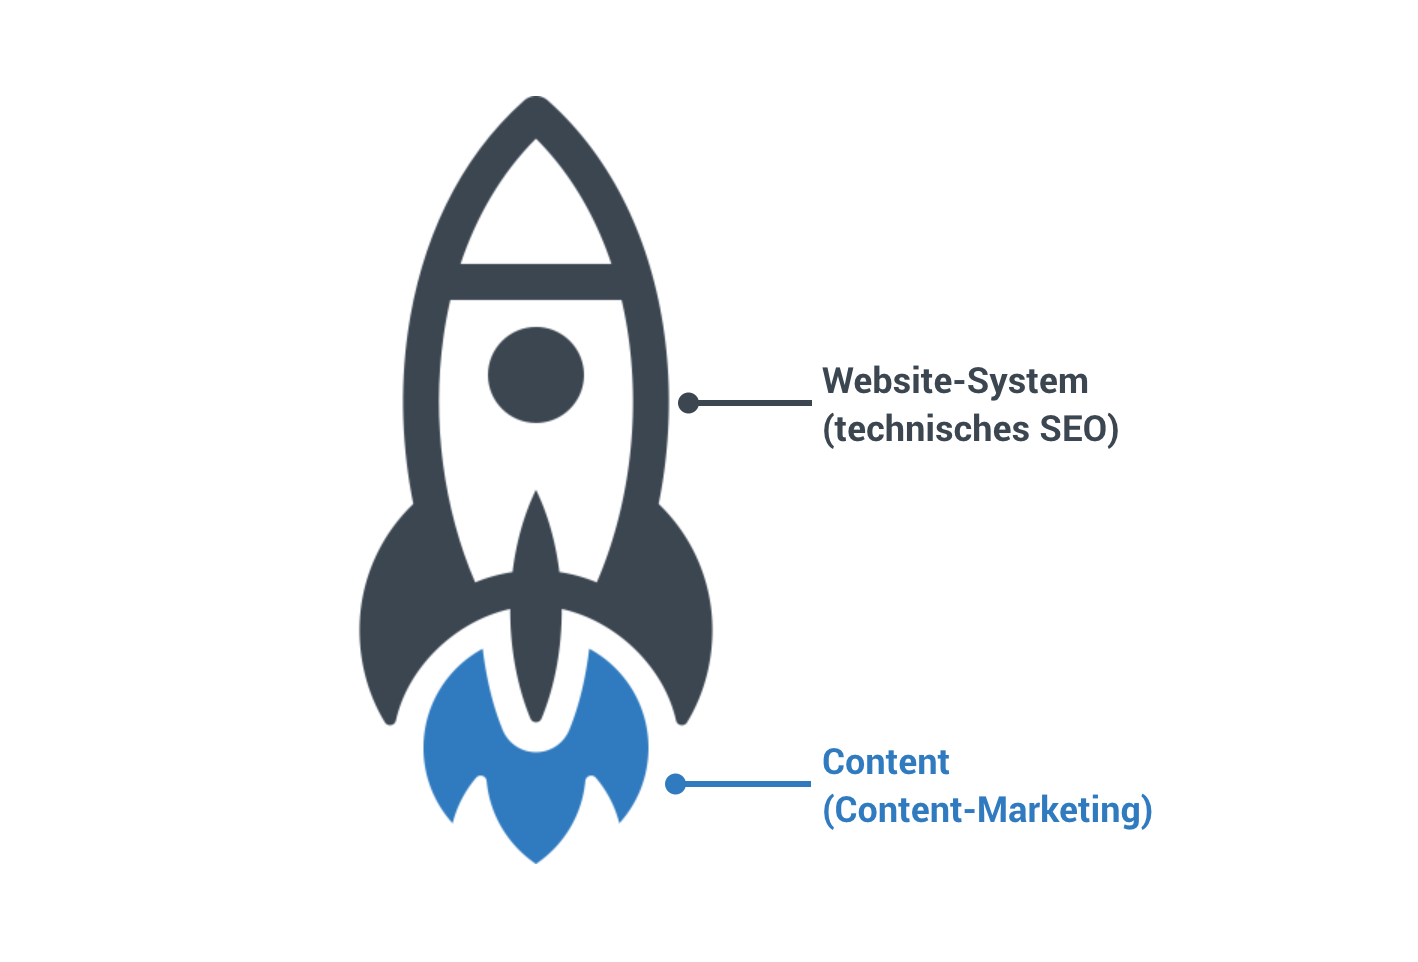 Content-Marketing Rakete